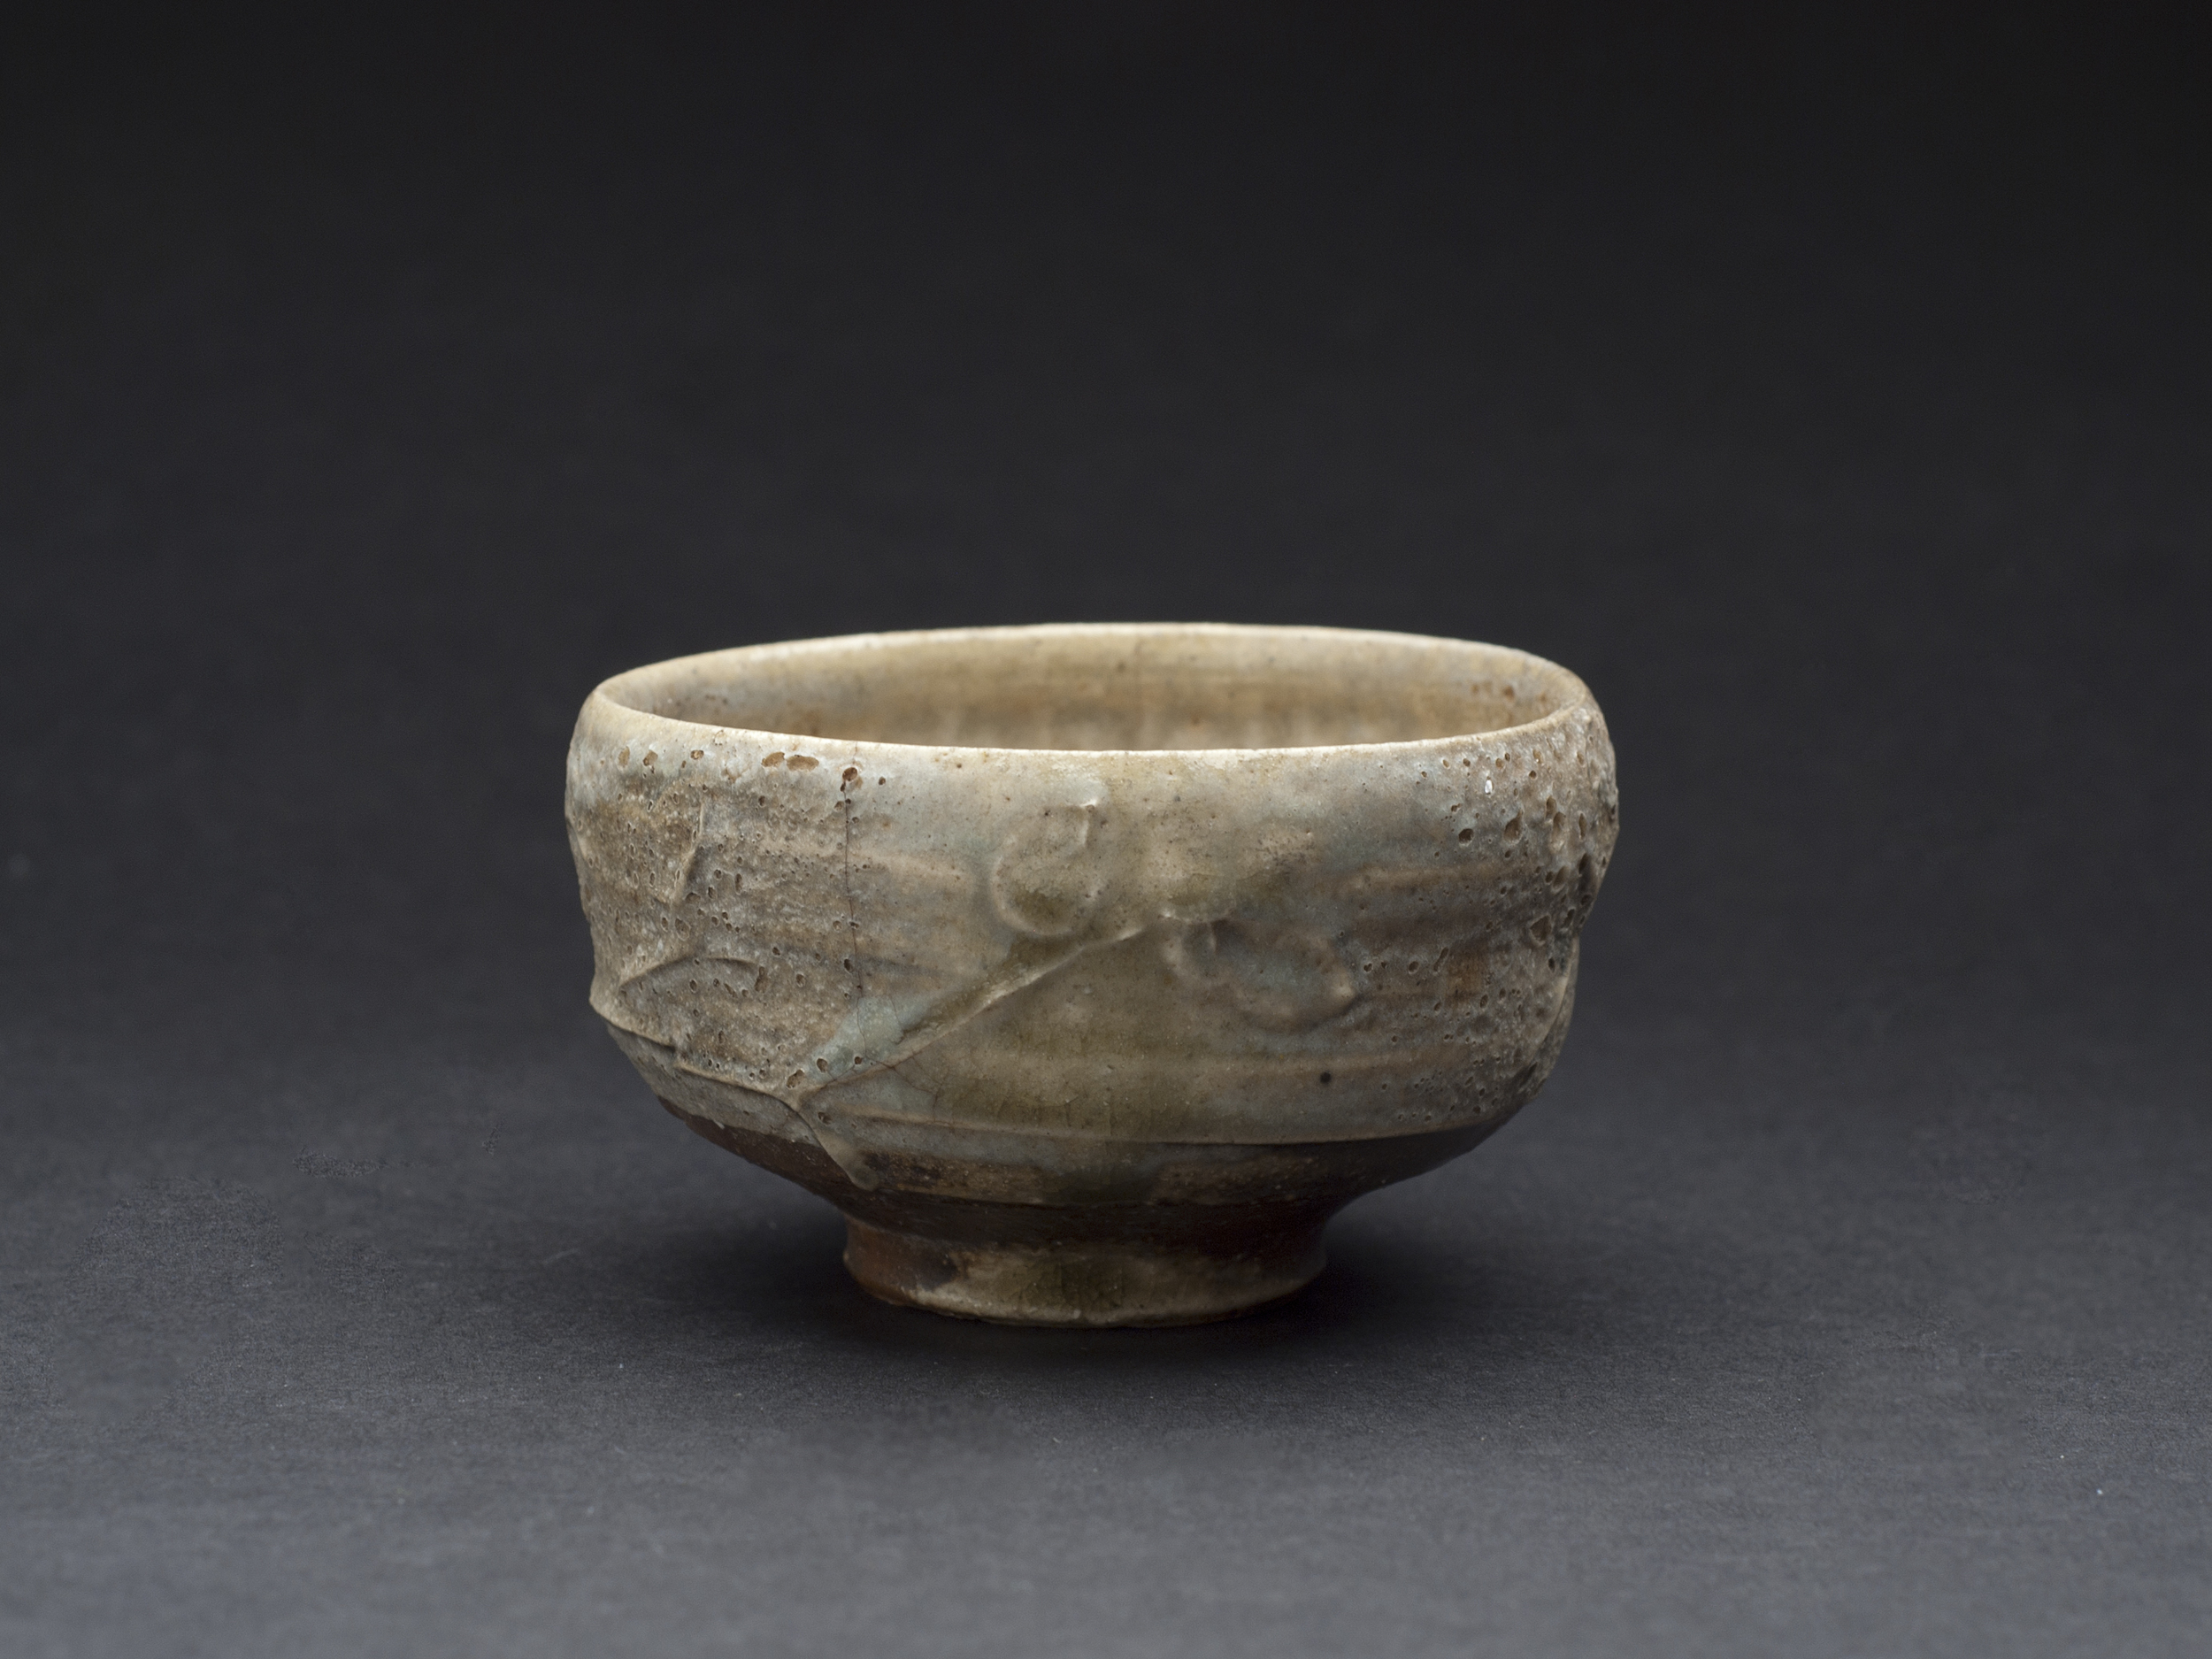 Paul Fryman    Cup  , 2012 Woodfired 2 x 3.5 inches 5.1 x 8.9 cm PDr 5